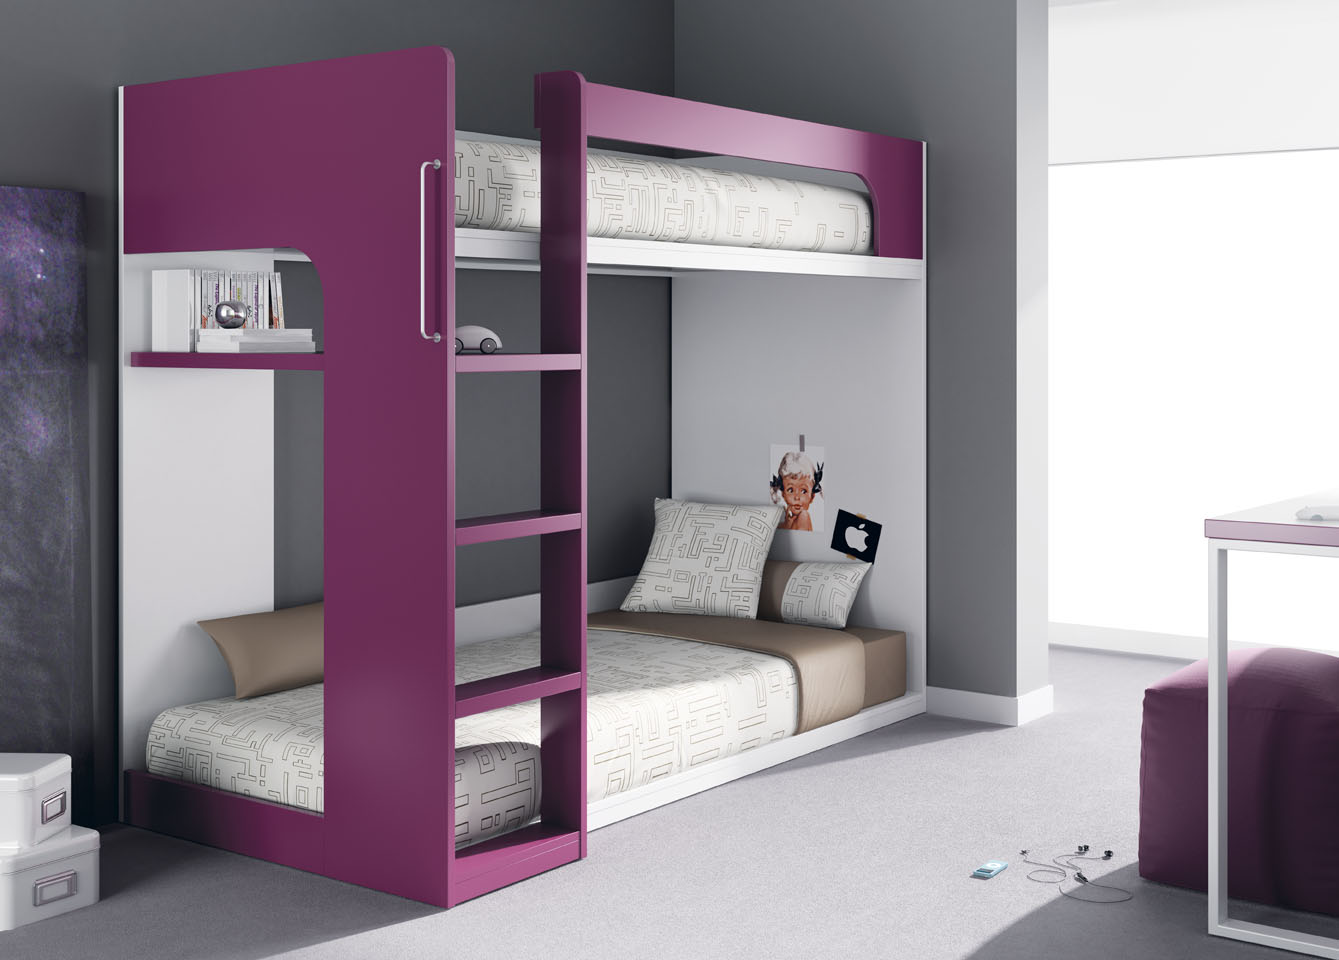 lits superpos s de meubles ros. Black Bedroom Furniture Sets. Home Design Ideas